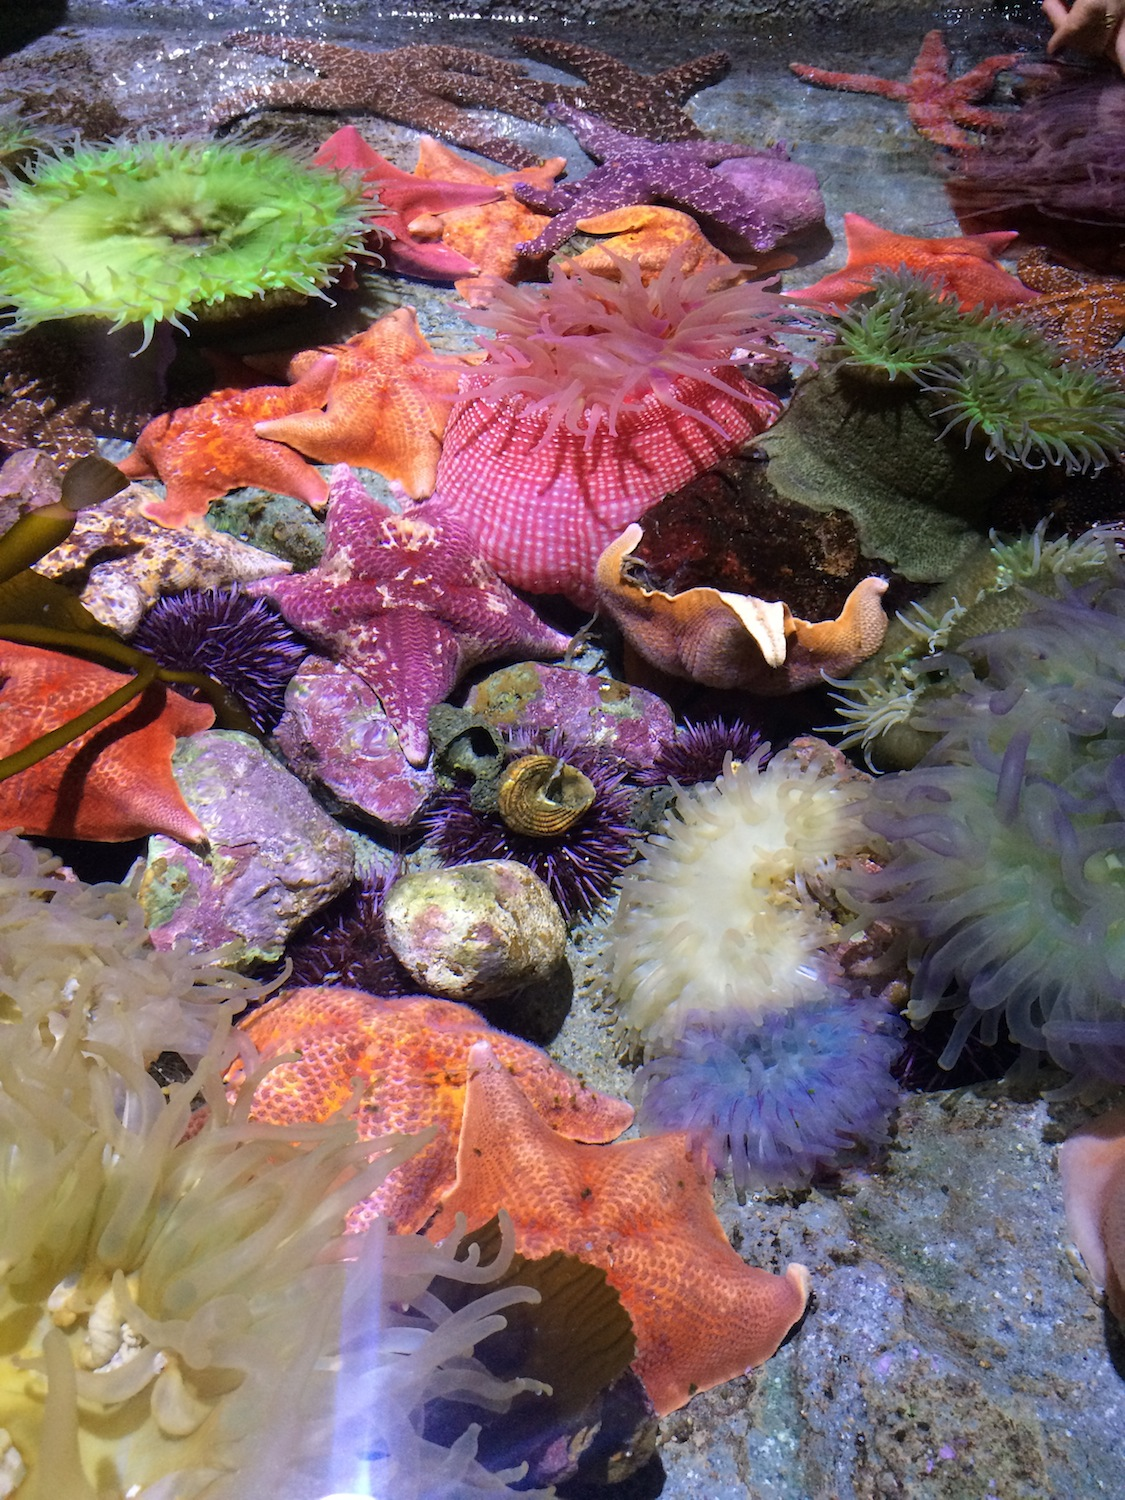 Getting A Close Up Look At Colorful Sea Anemones And Textured Cs You Can Even Touch Feel This Gorgeous Marine Life